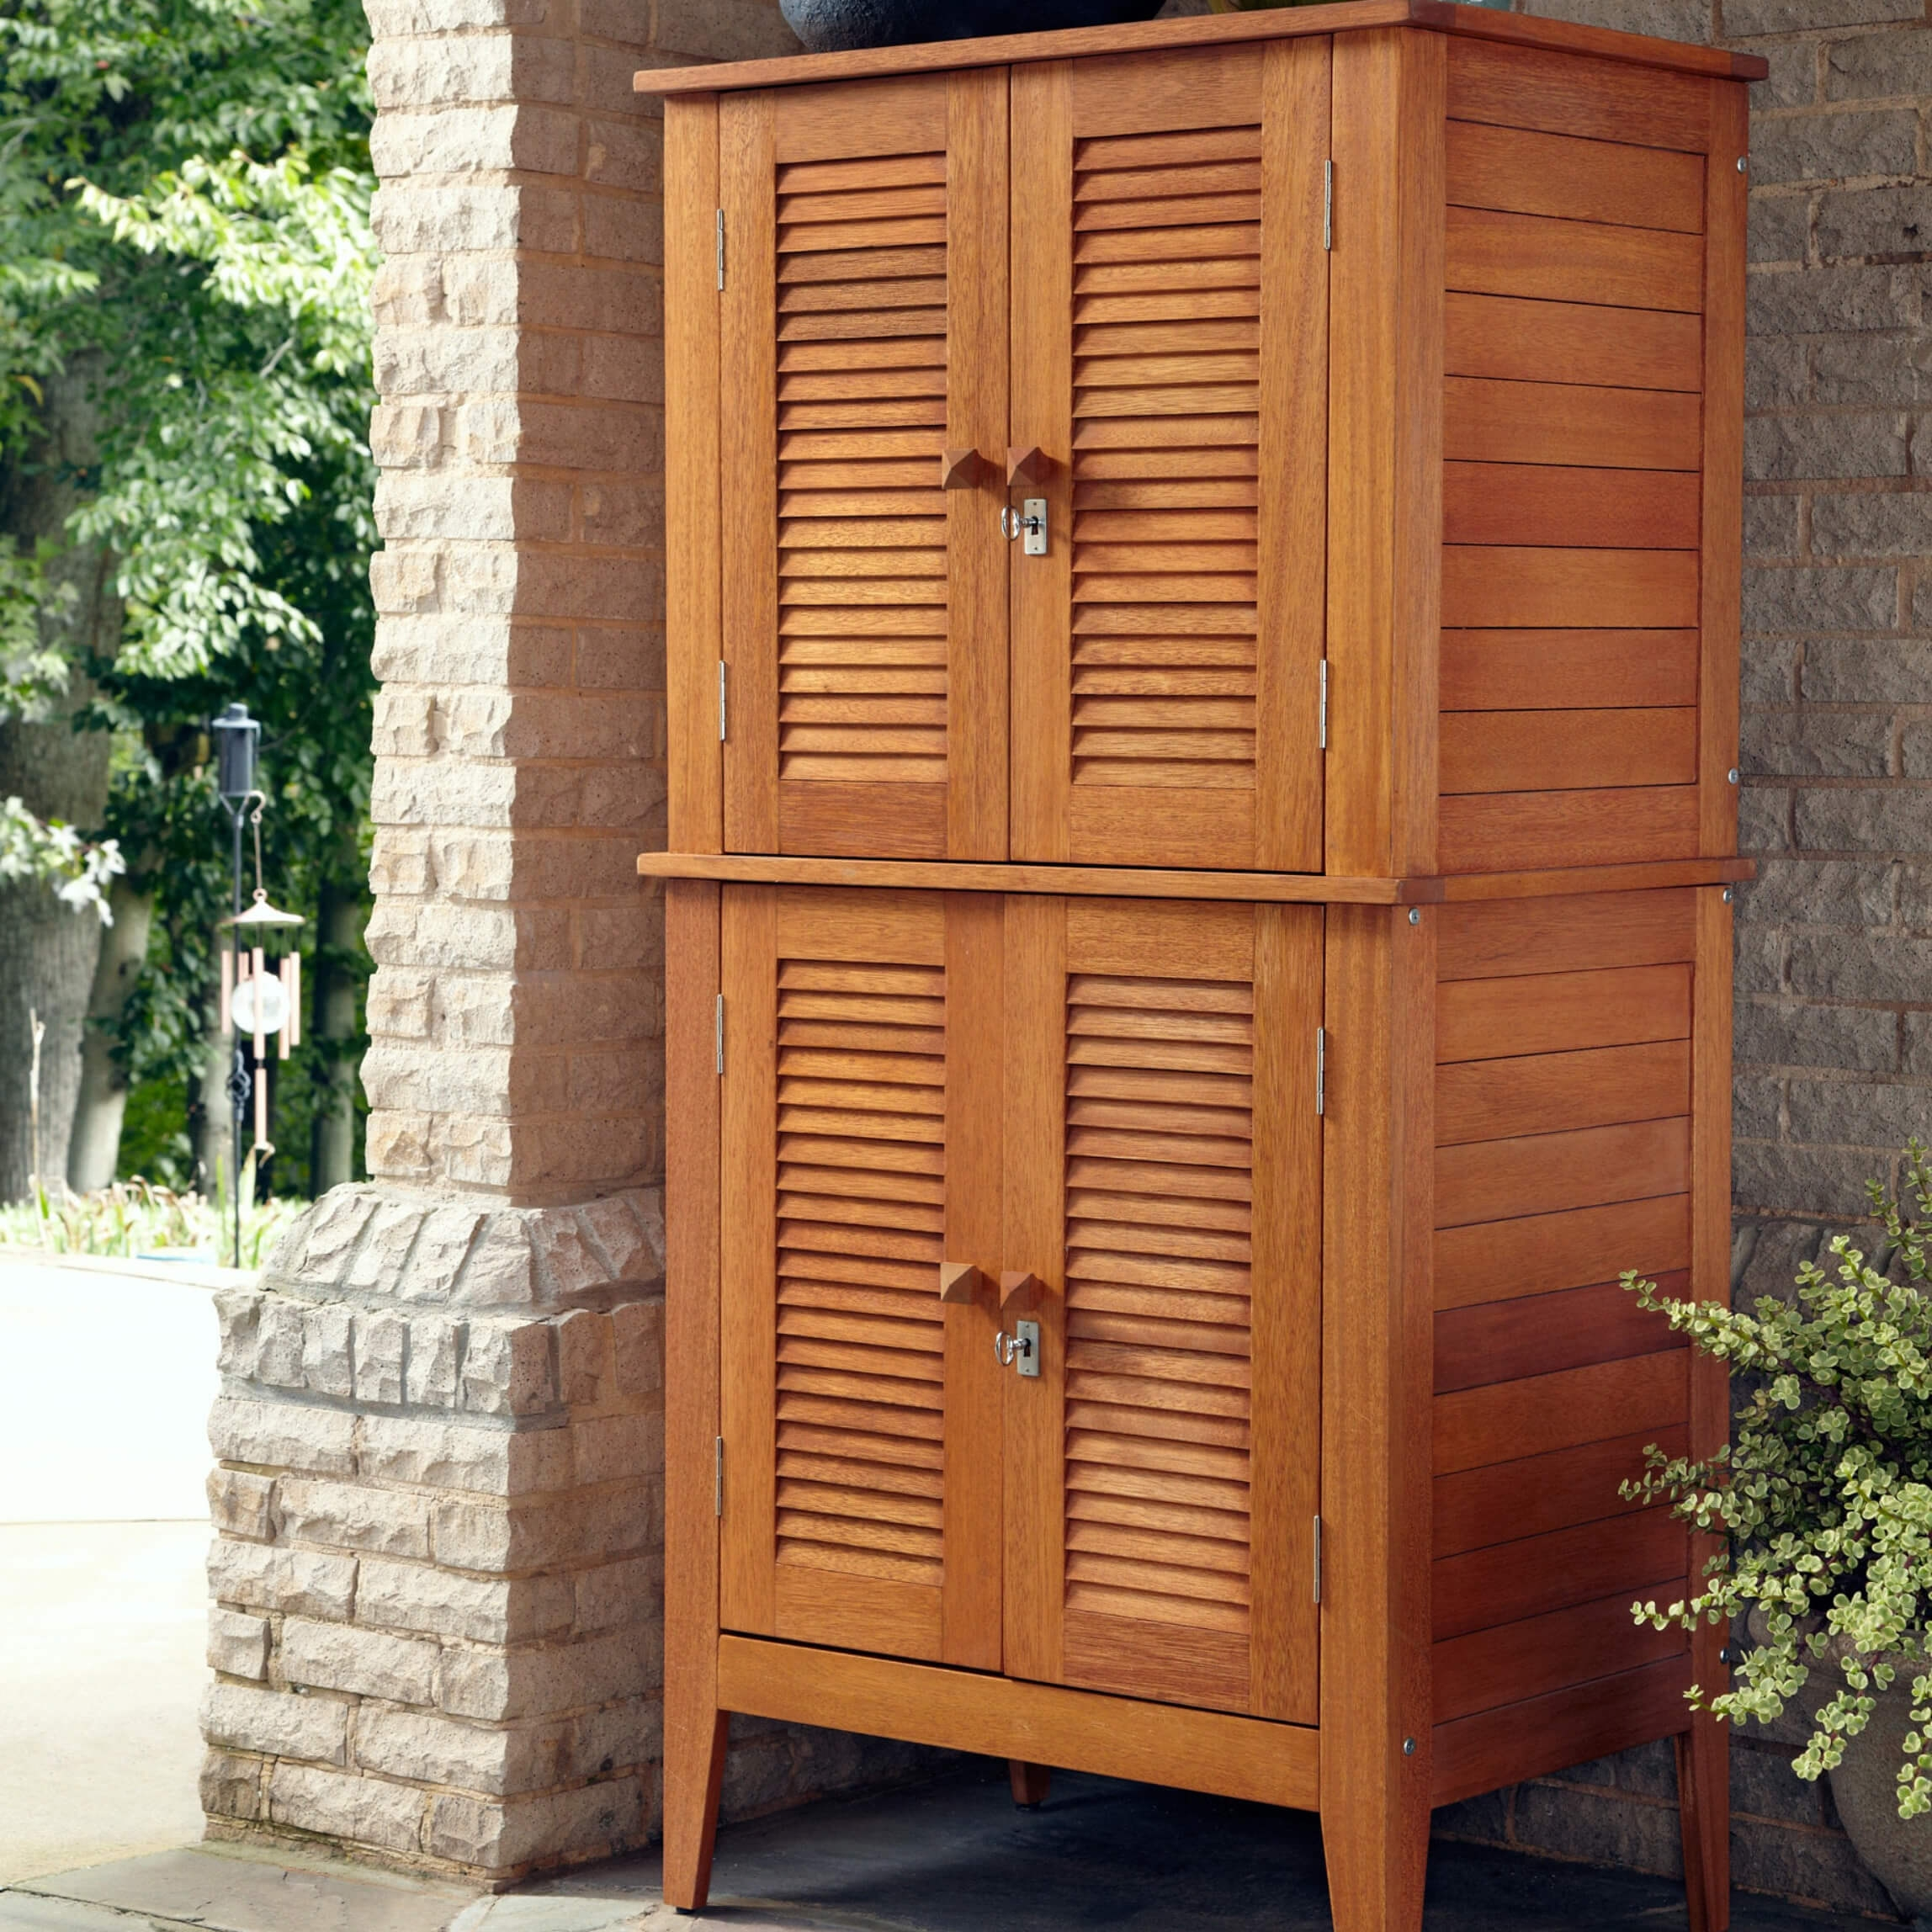 Patio Deck Storage Cabinets